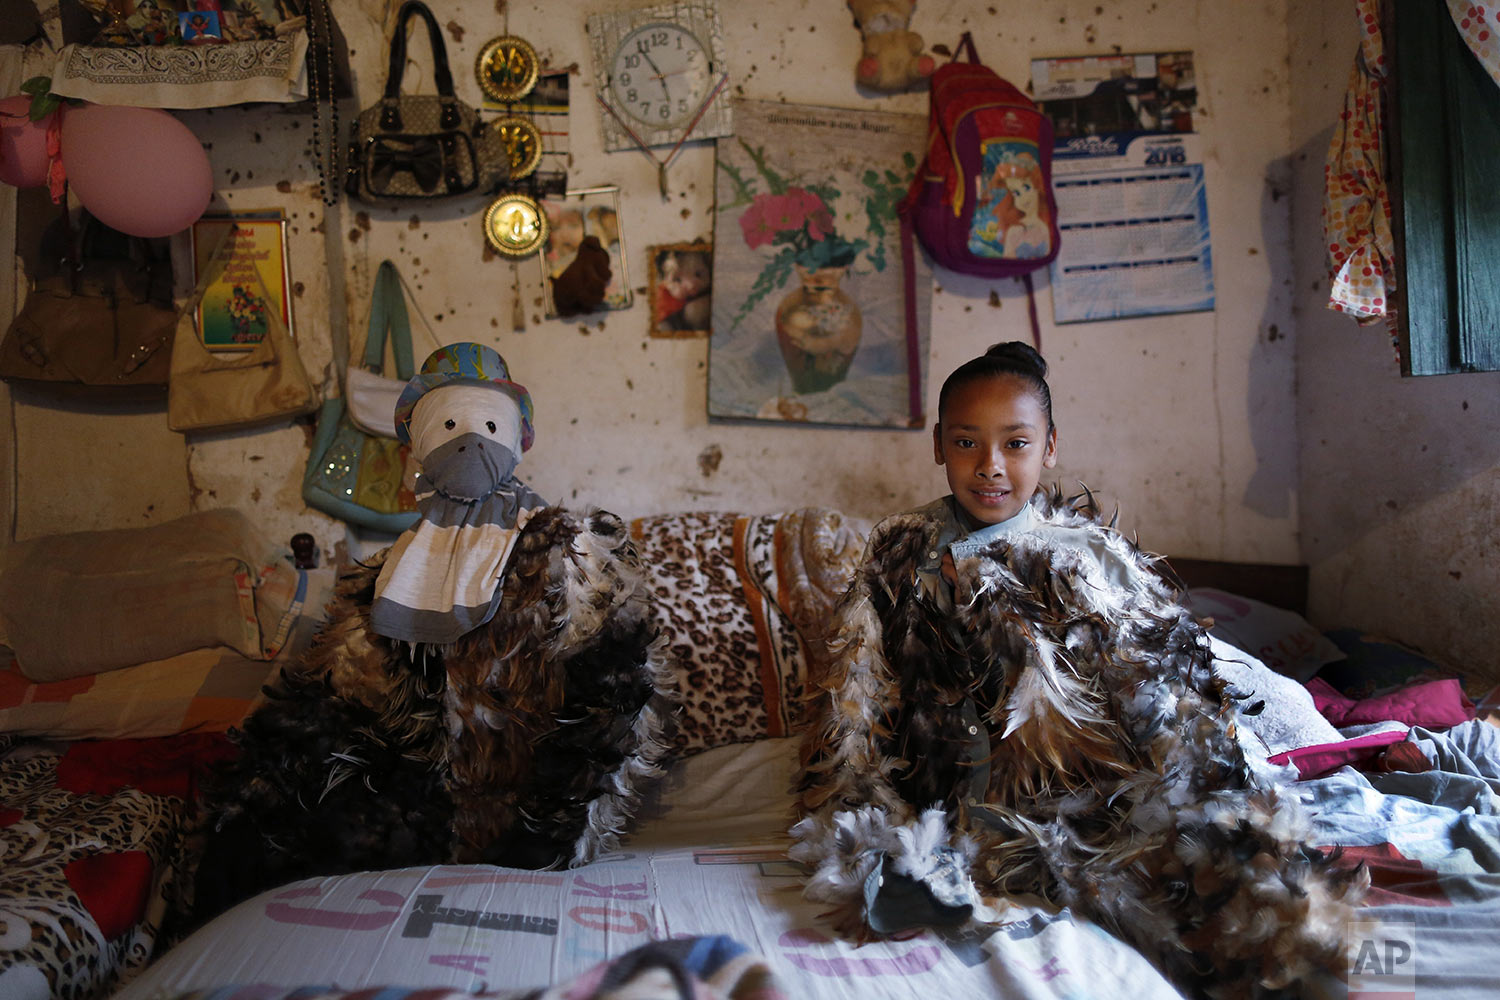 Alexis Aguero, left, and his sister Andrea sit in their bedroom dressed in their feathered costumes before they go to honor St. Francis Solano in Emboscada, Paraguay, Wednesday, July 24, 2019. (AP Photo/Jorge Saenz)